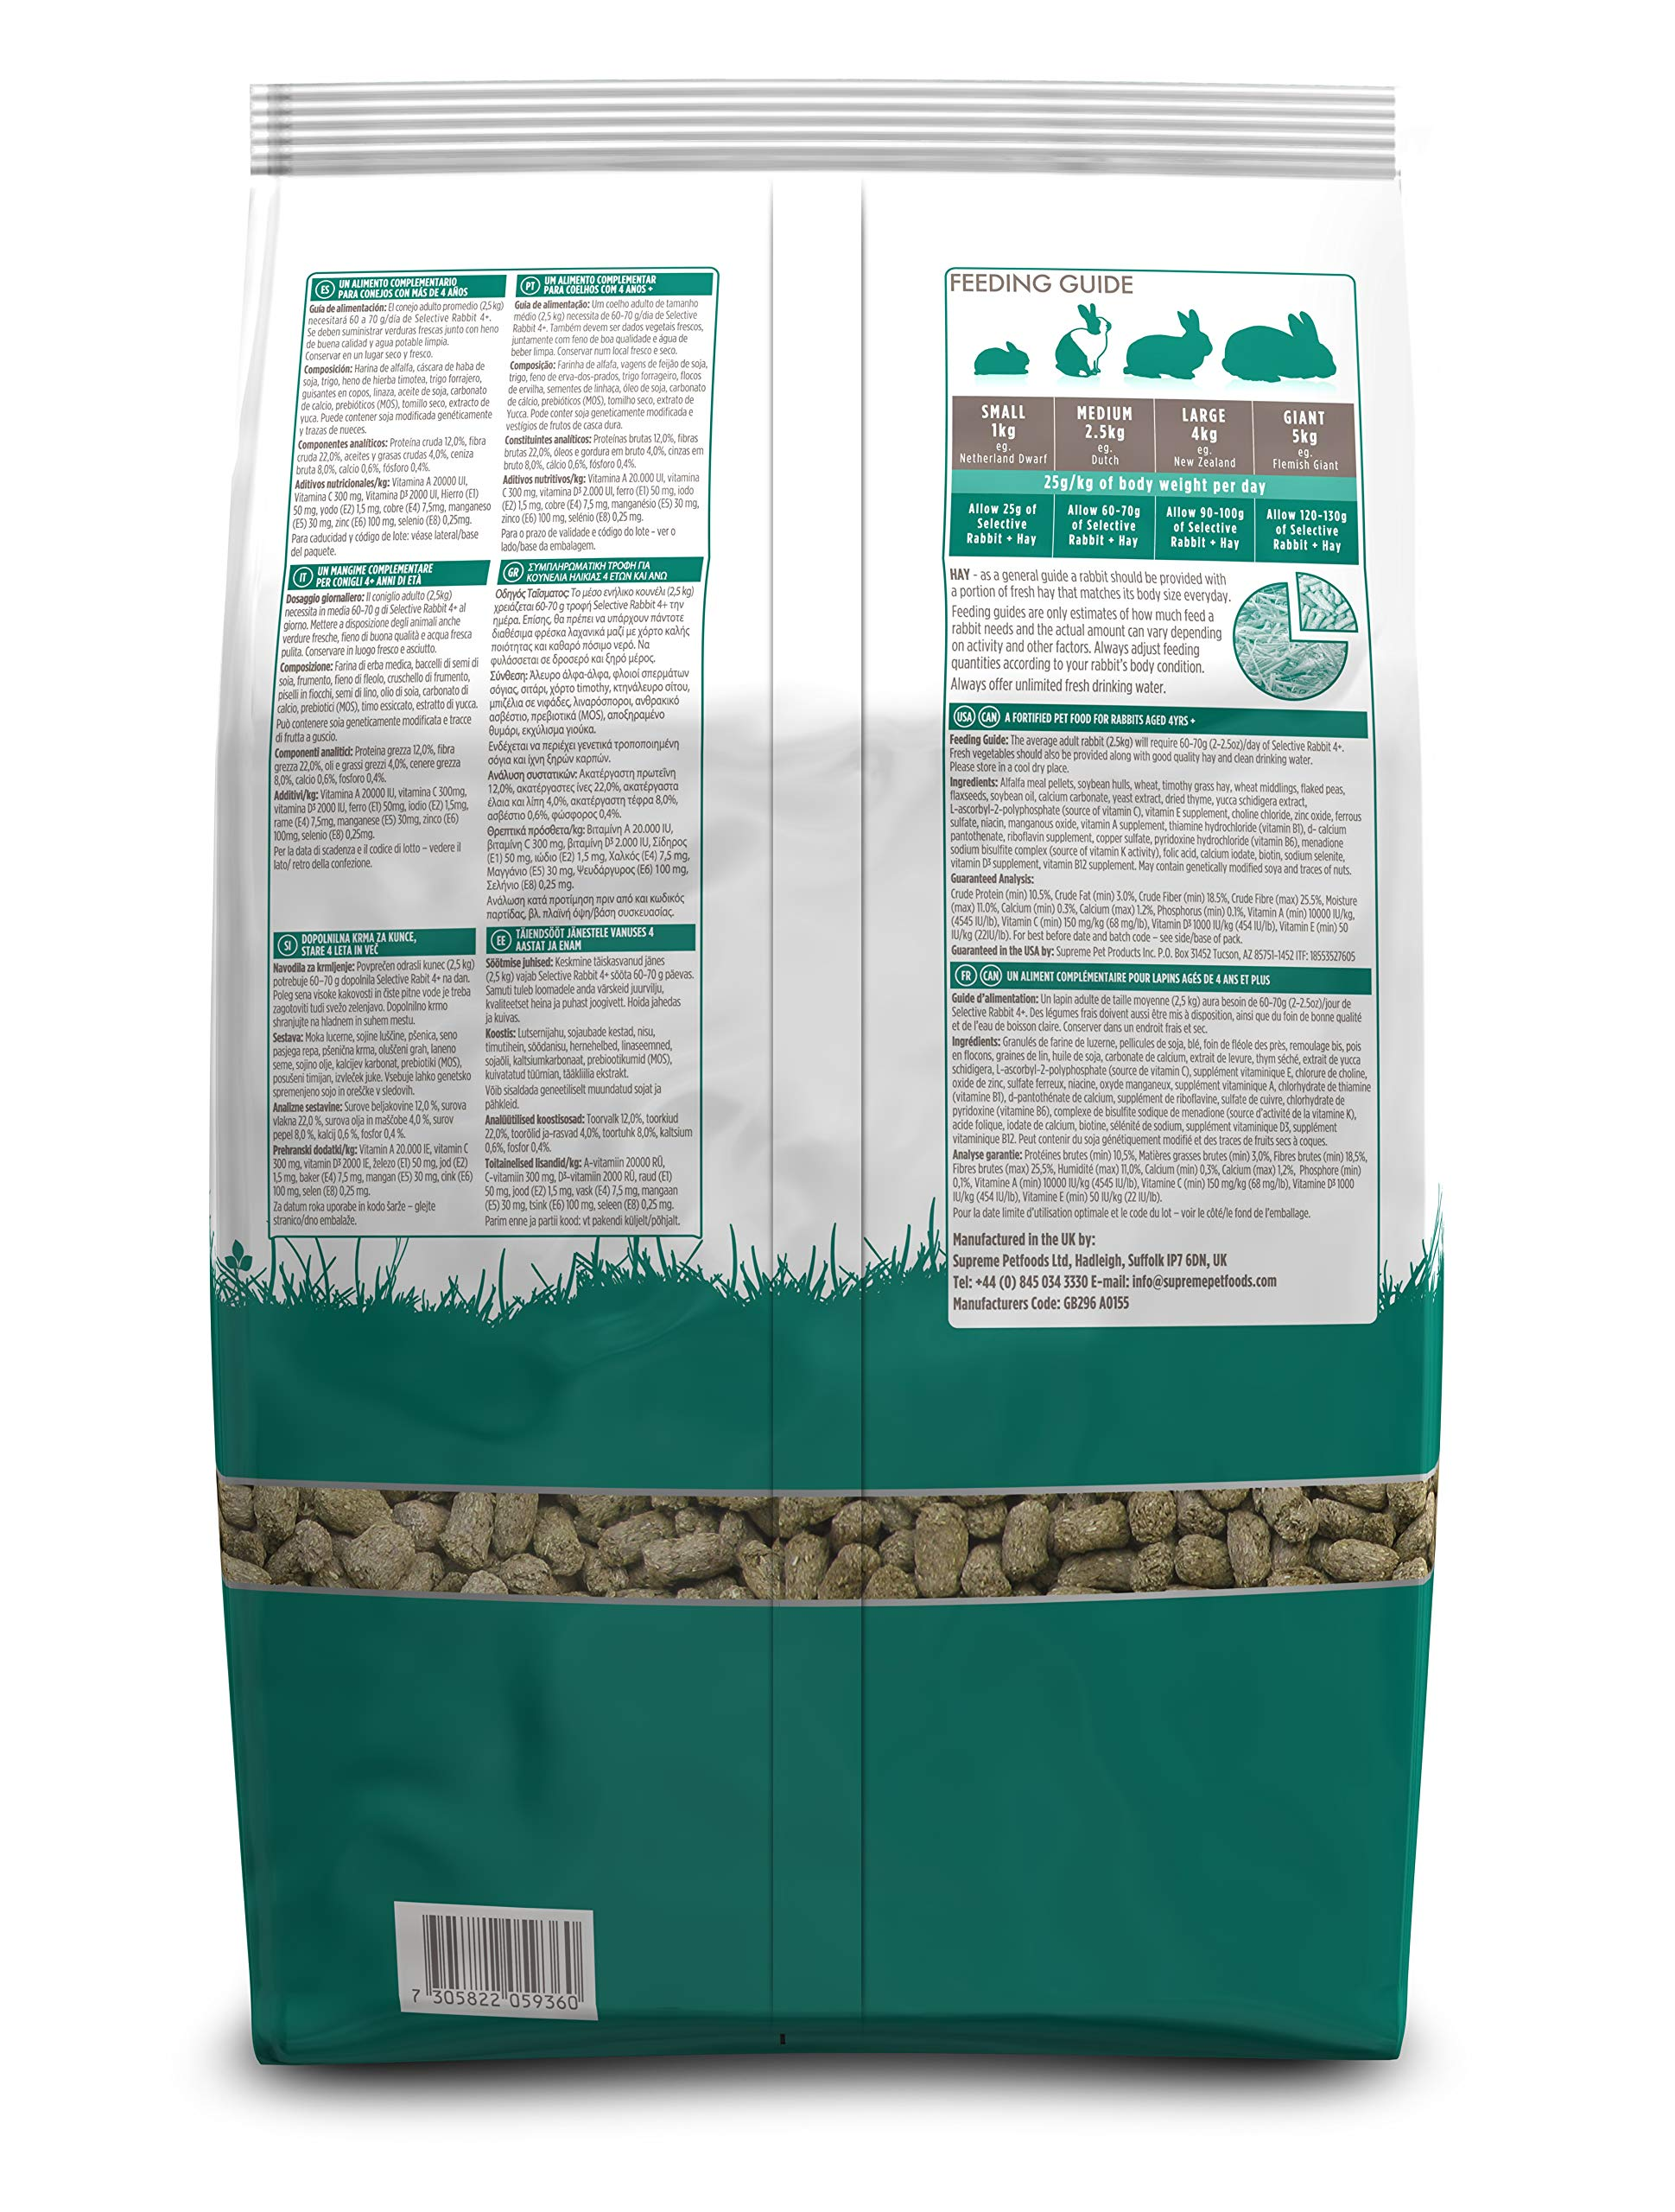 Supreme Petfoods Science Selective Food For 4 Plus Years Old Rabbit, 4.4 Lb